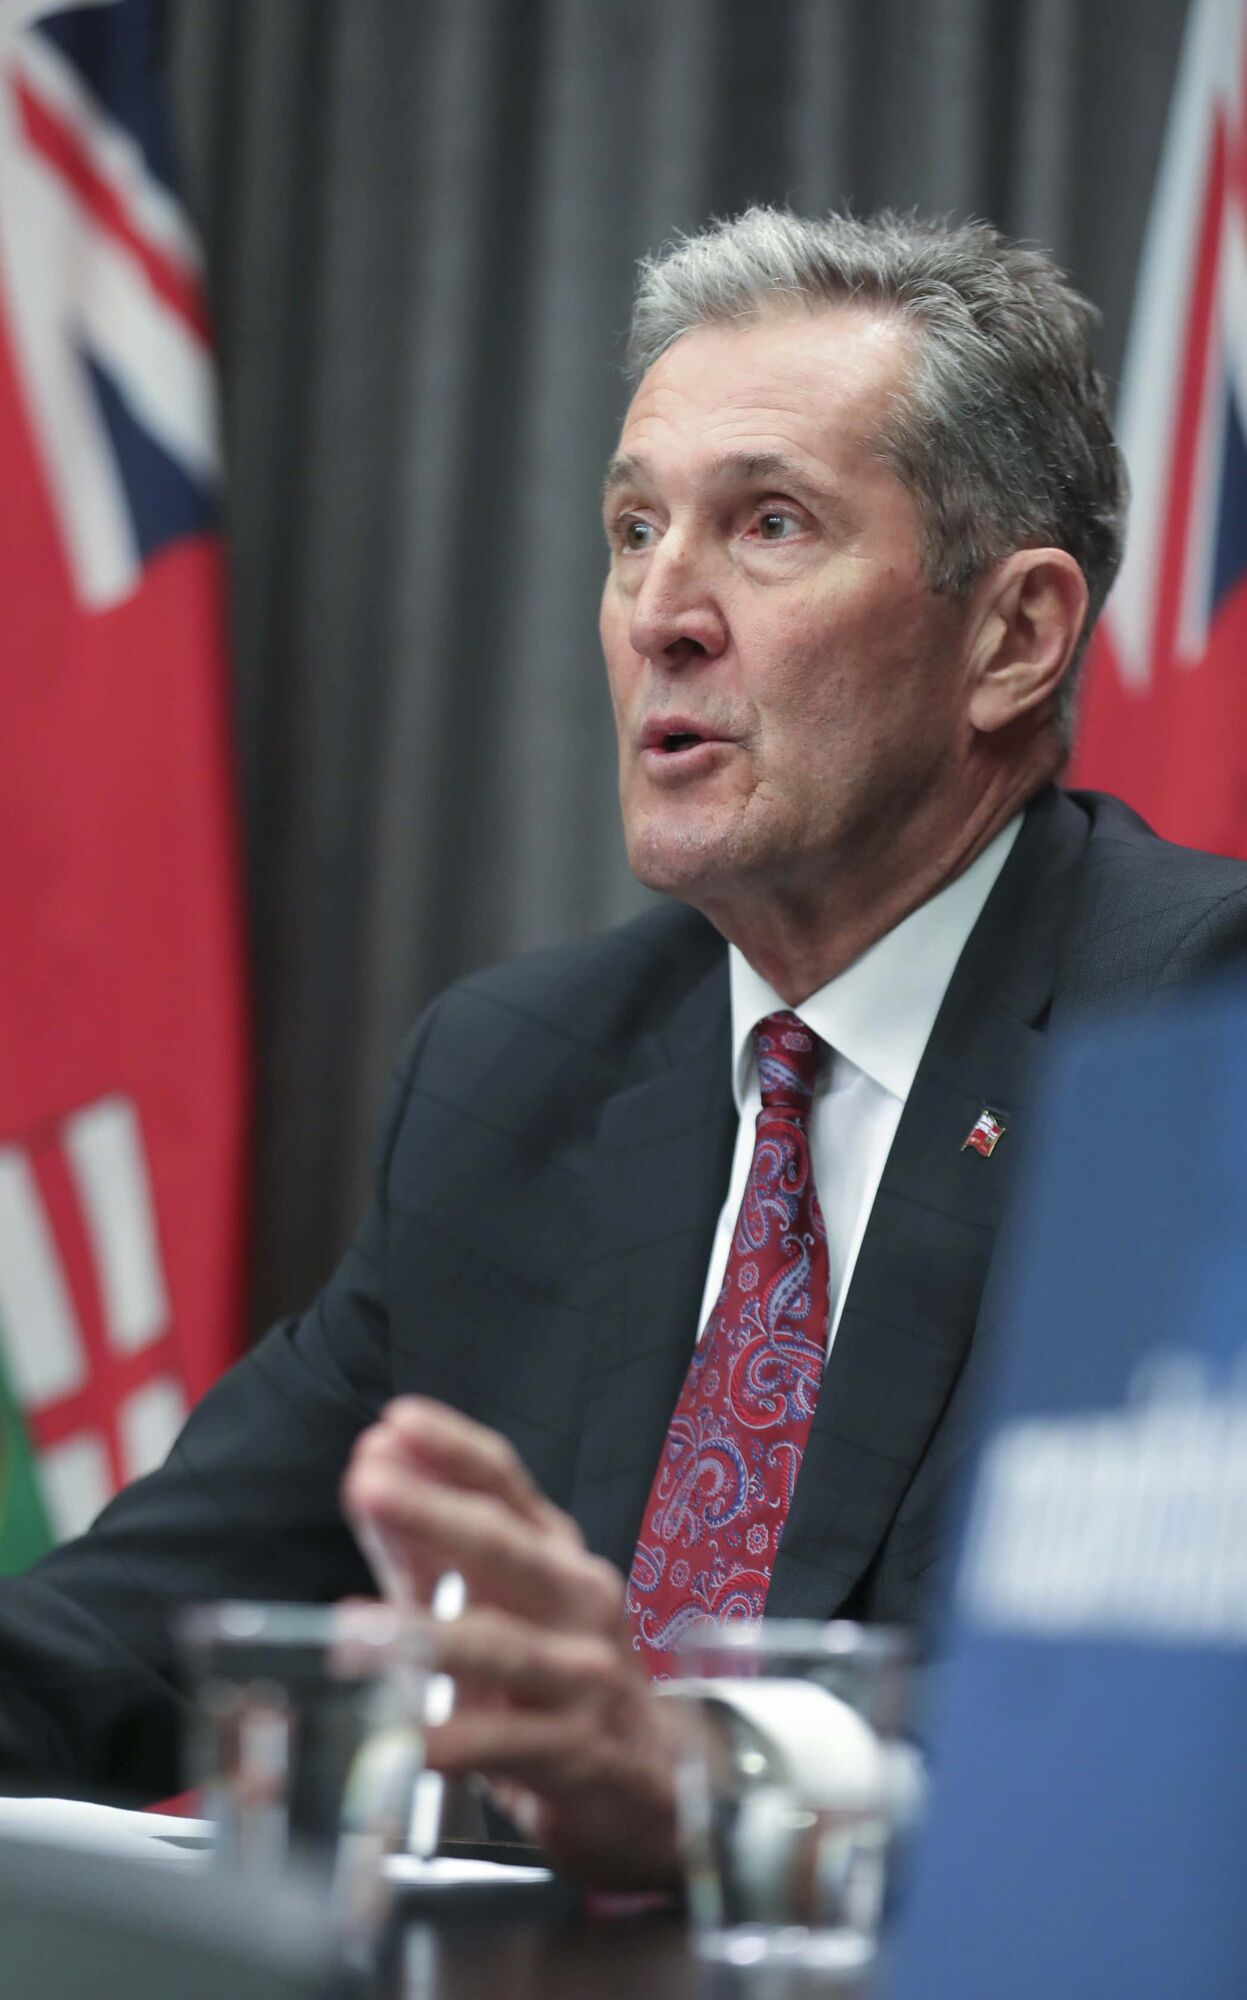 Premier Brian Pallister said that without layoffs, the province's economic recovery would take longer to realize and Hydro's debt — already swollen by capital projects — would continue to grow. (Ruth Bonneville / Winnipeg Free Press)